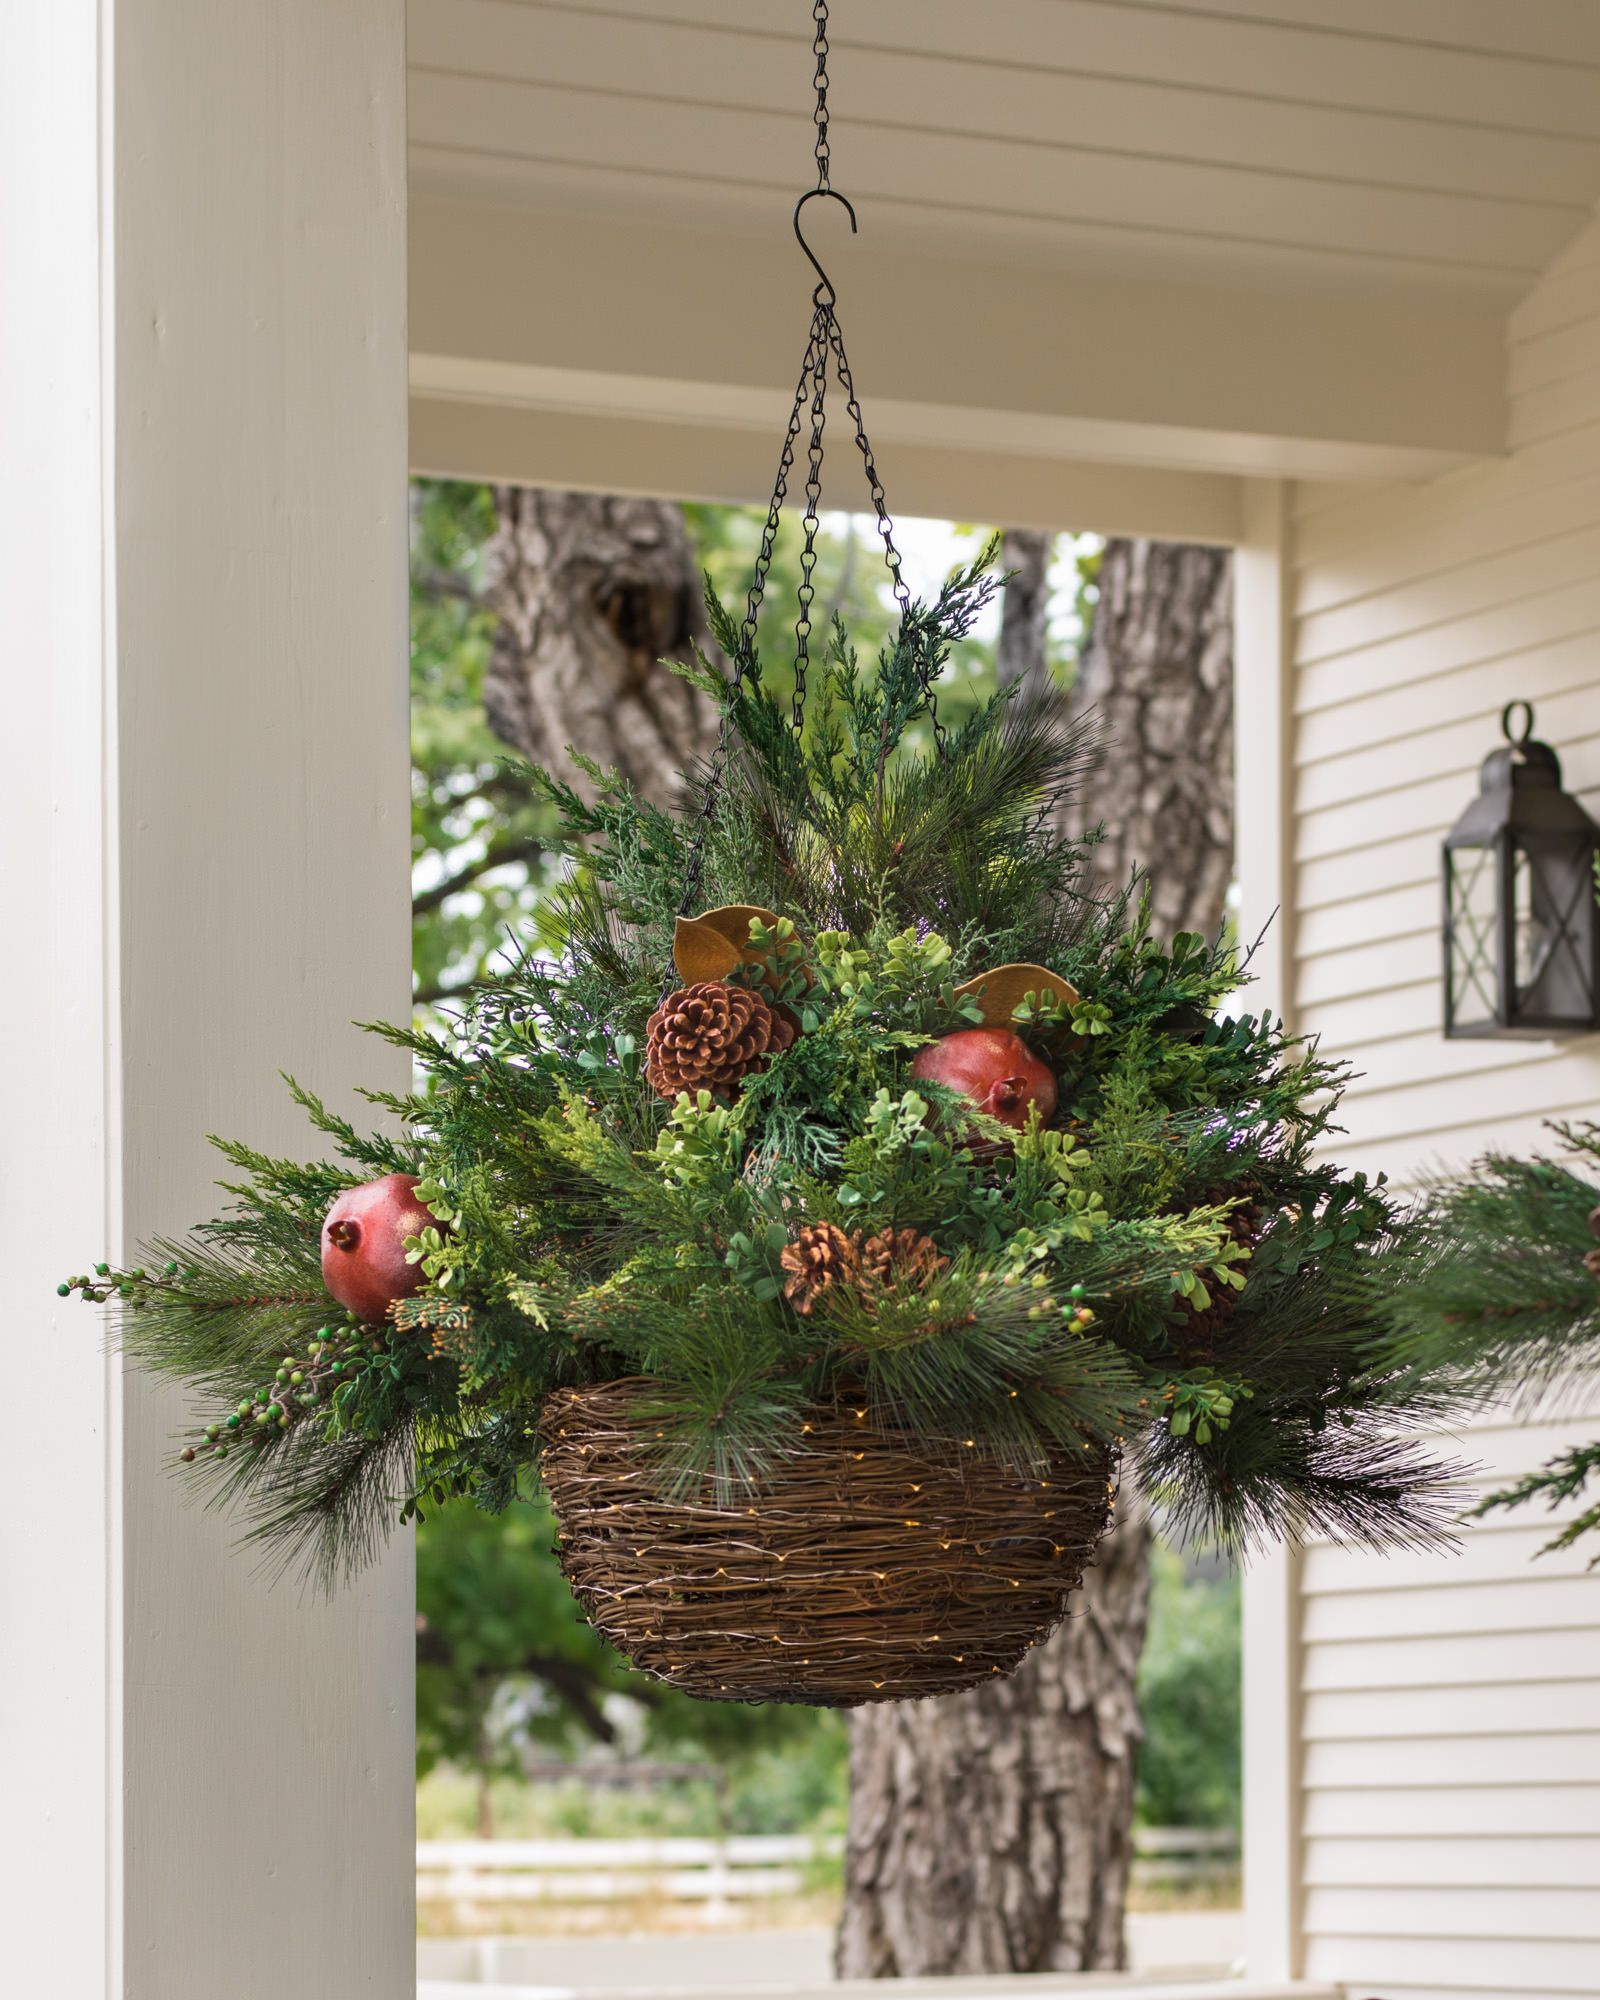 Led Mixed Pine Hanging Basket Sale Price 179 Features A Removable Arrangement Of Christmas Hanging Baskets Outdoor Christmas Decorations Christmas Swags